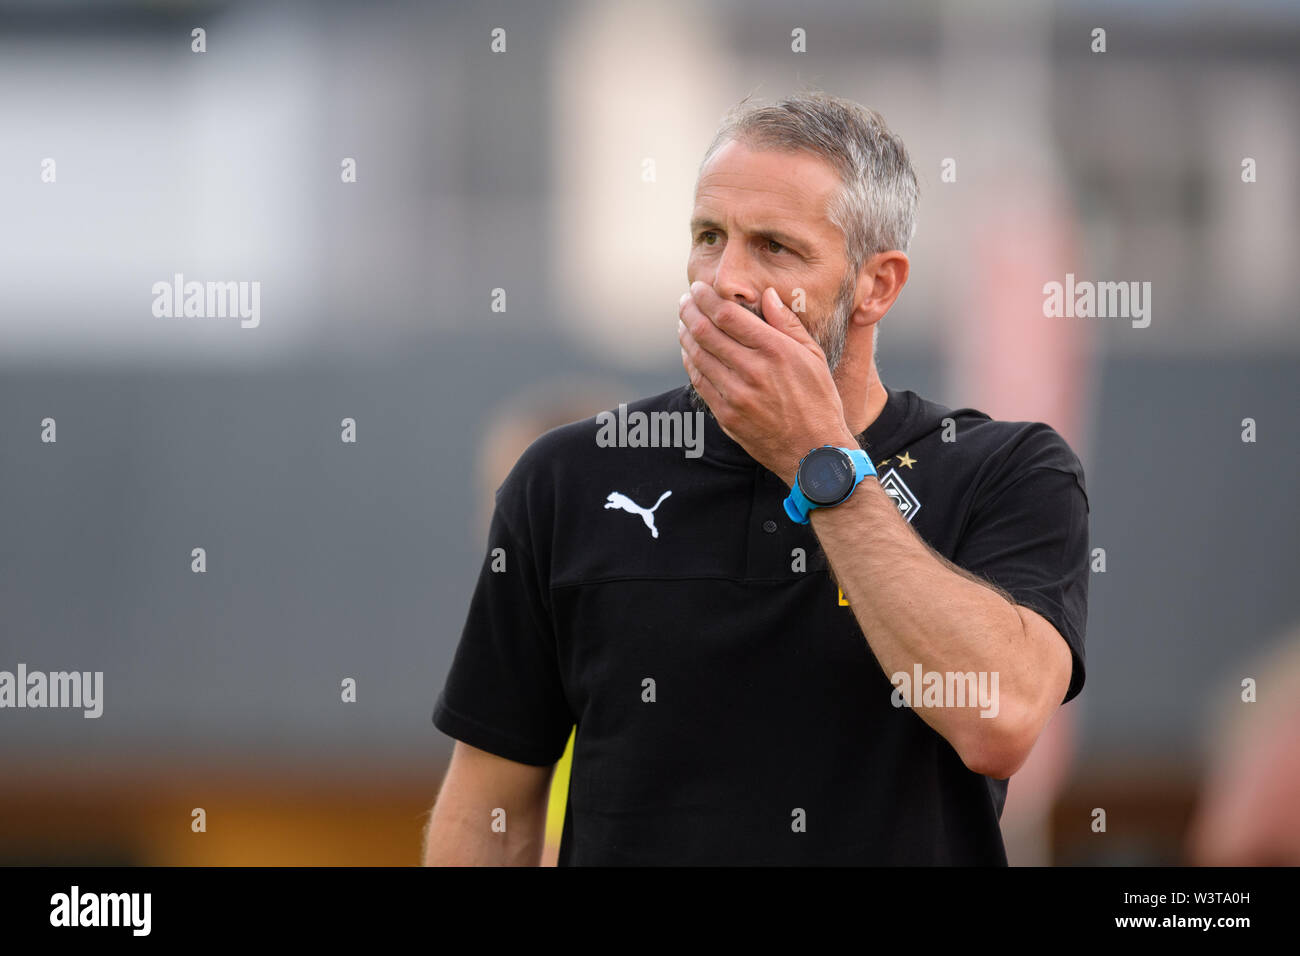 Kufstein, Austria. 17th July, 2019. Soccer: Test matches, Borussia Mönchengladbach - Basaksehir FC in Kufstein. Coach Marco Rose von Mönchengladbach observes the game. Credit: Matthias Balk/dpa/Alamy Live News - Stock Image